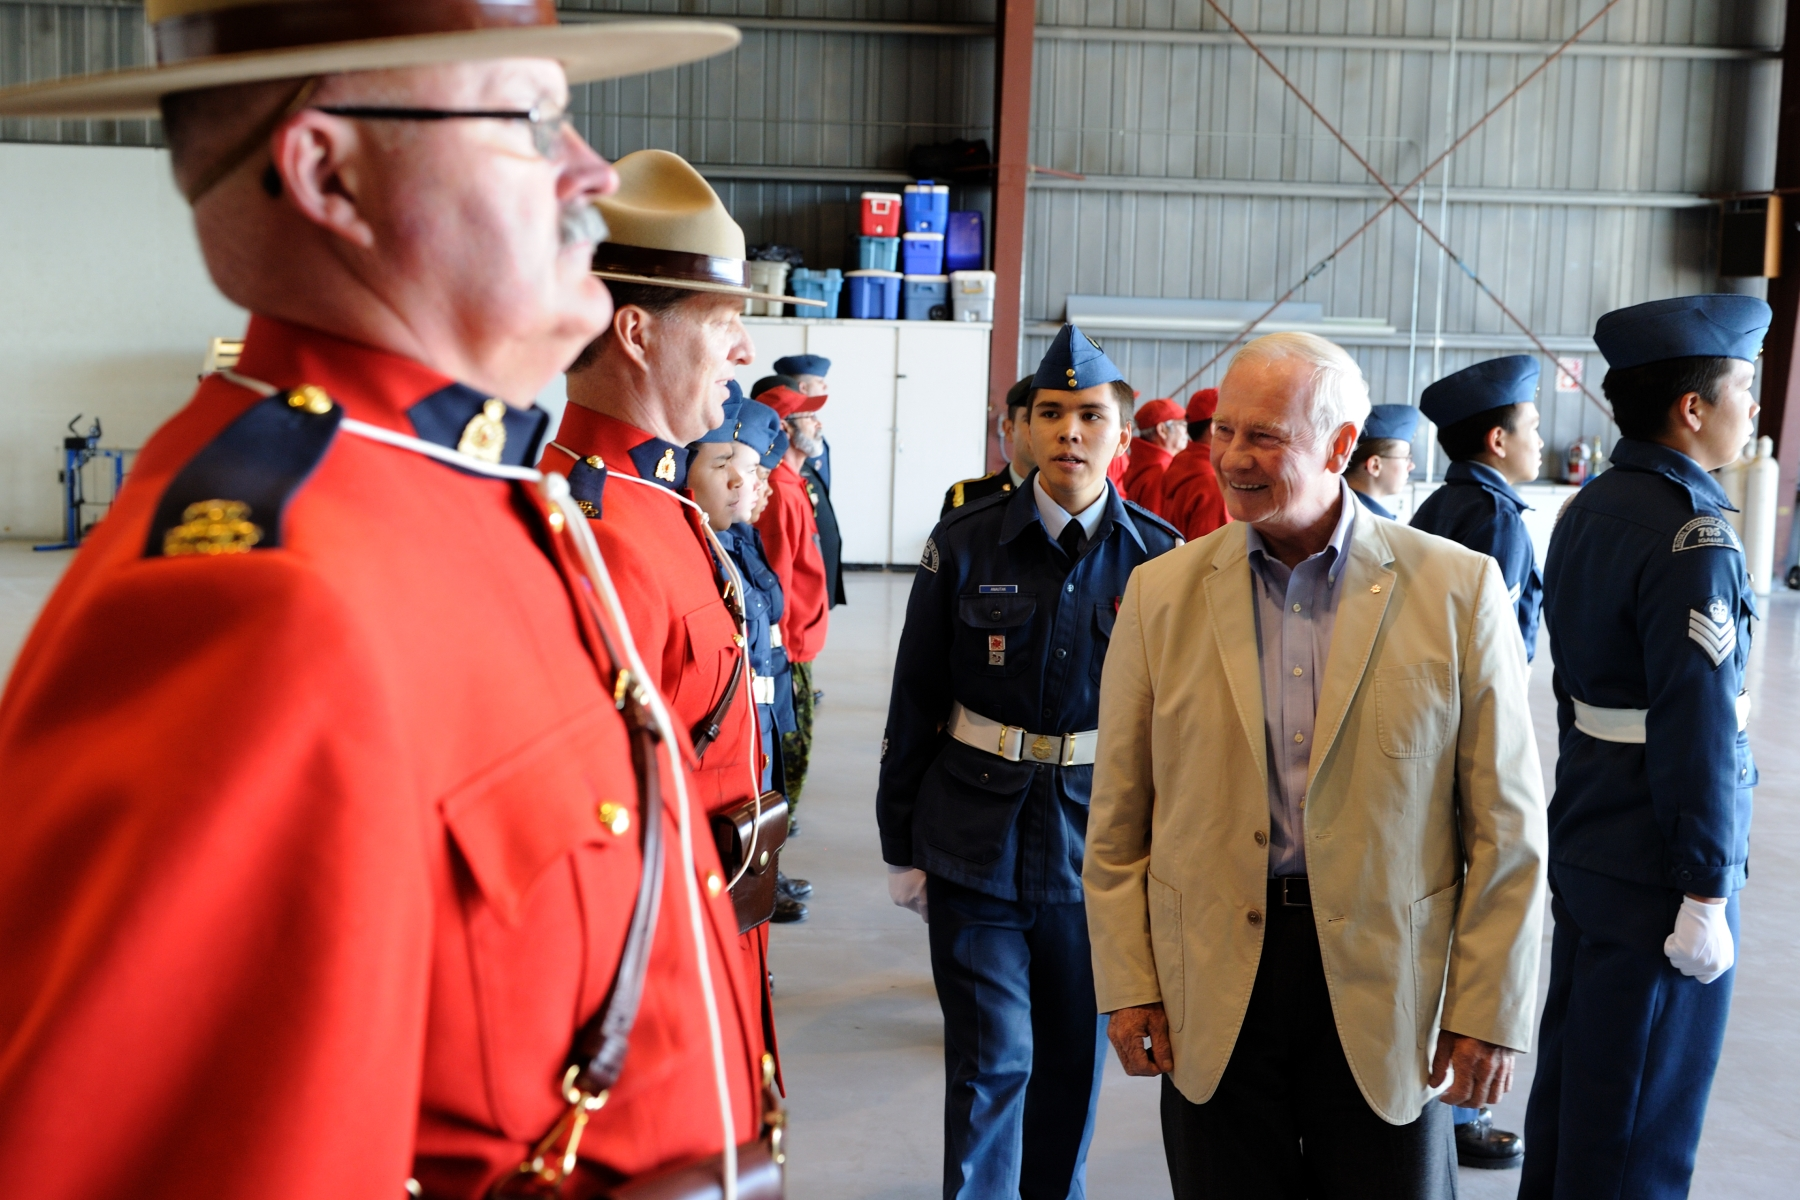 The Governor General conducted an inspection of the quarter guard during the official welcoming ceremony.